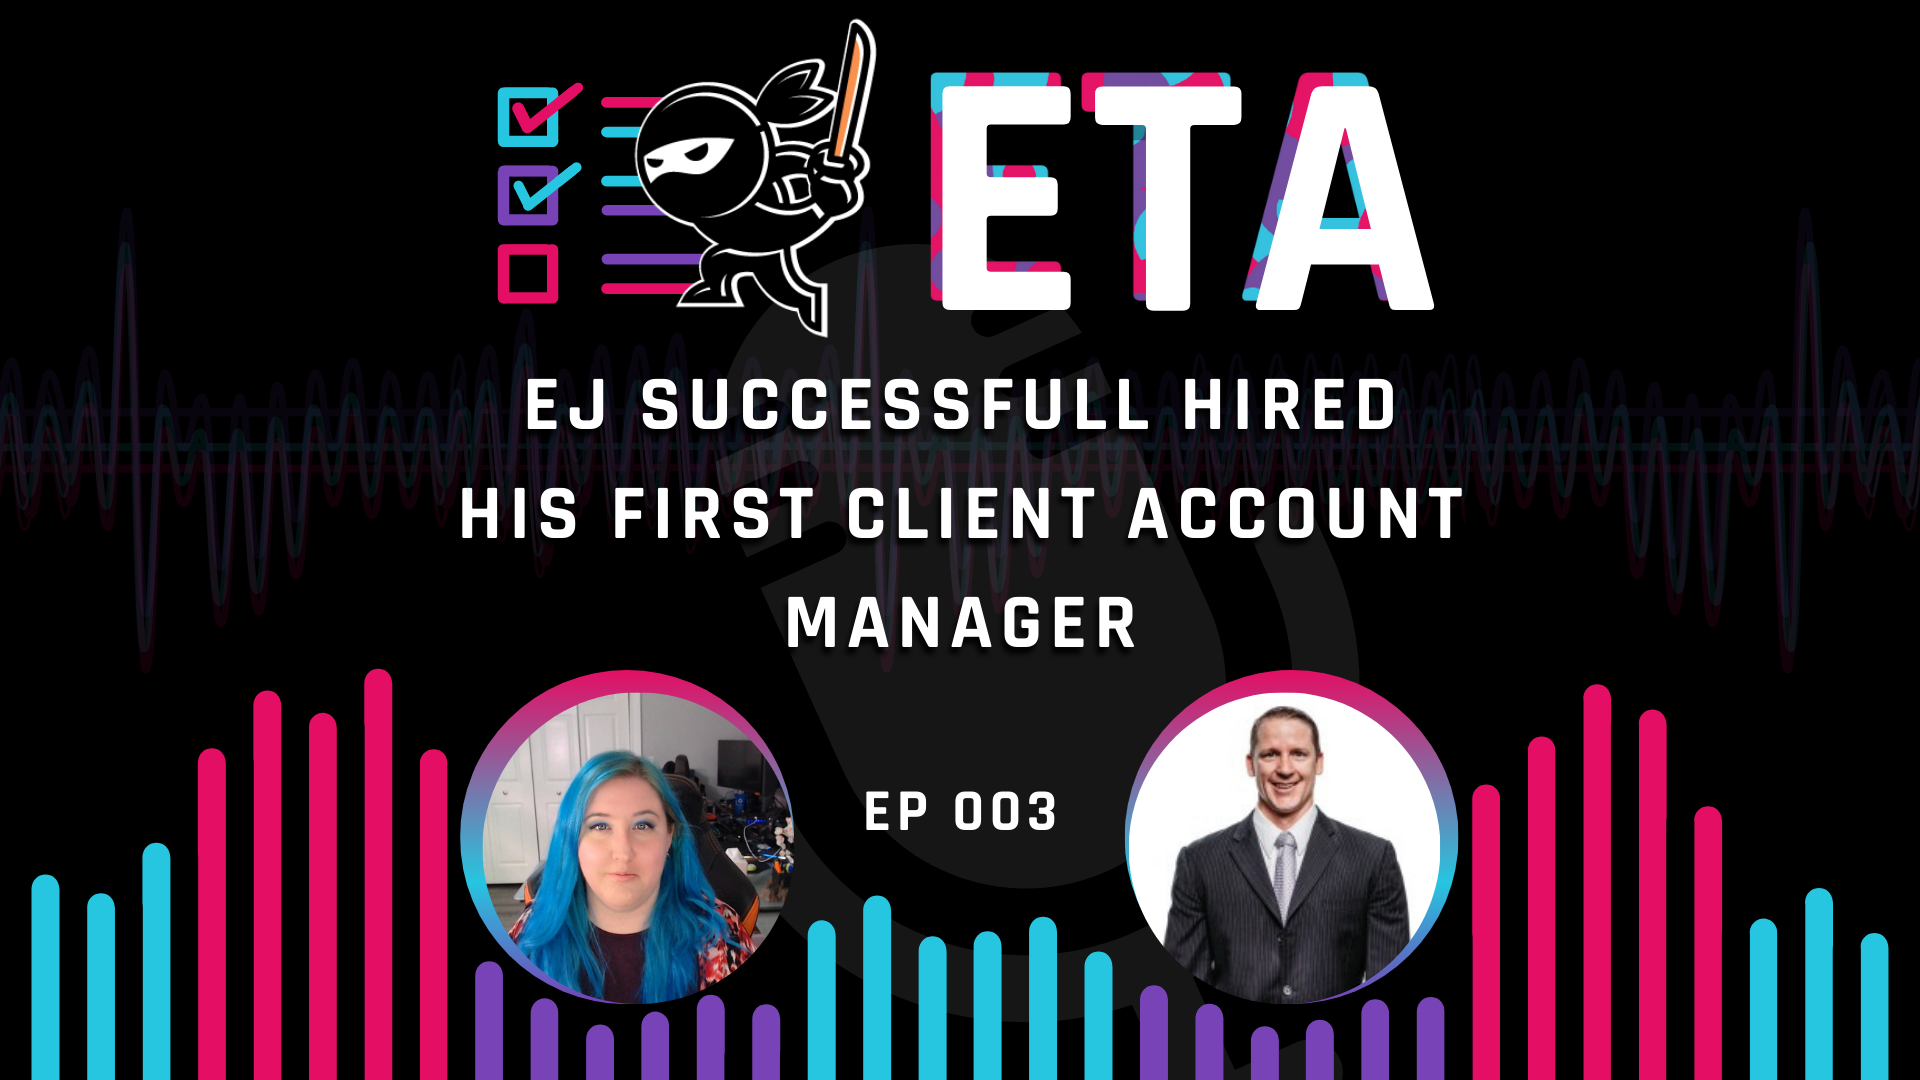 003 — EJ Hired His First Account Manager and Successfully Shifted Client Accounts to Them